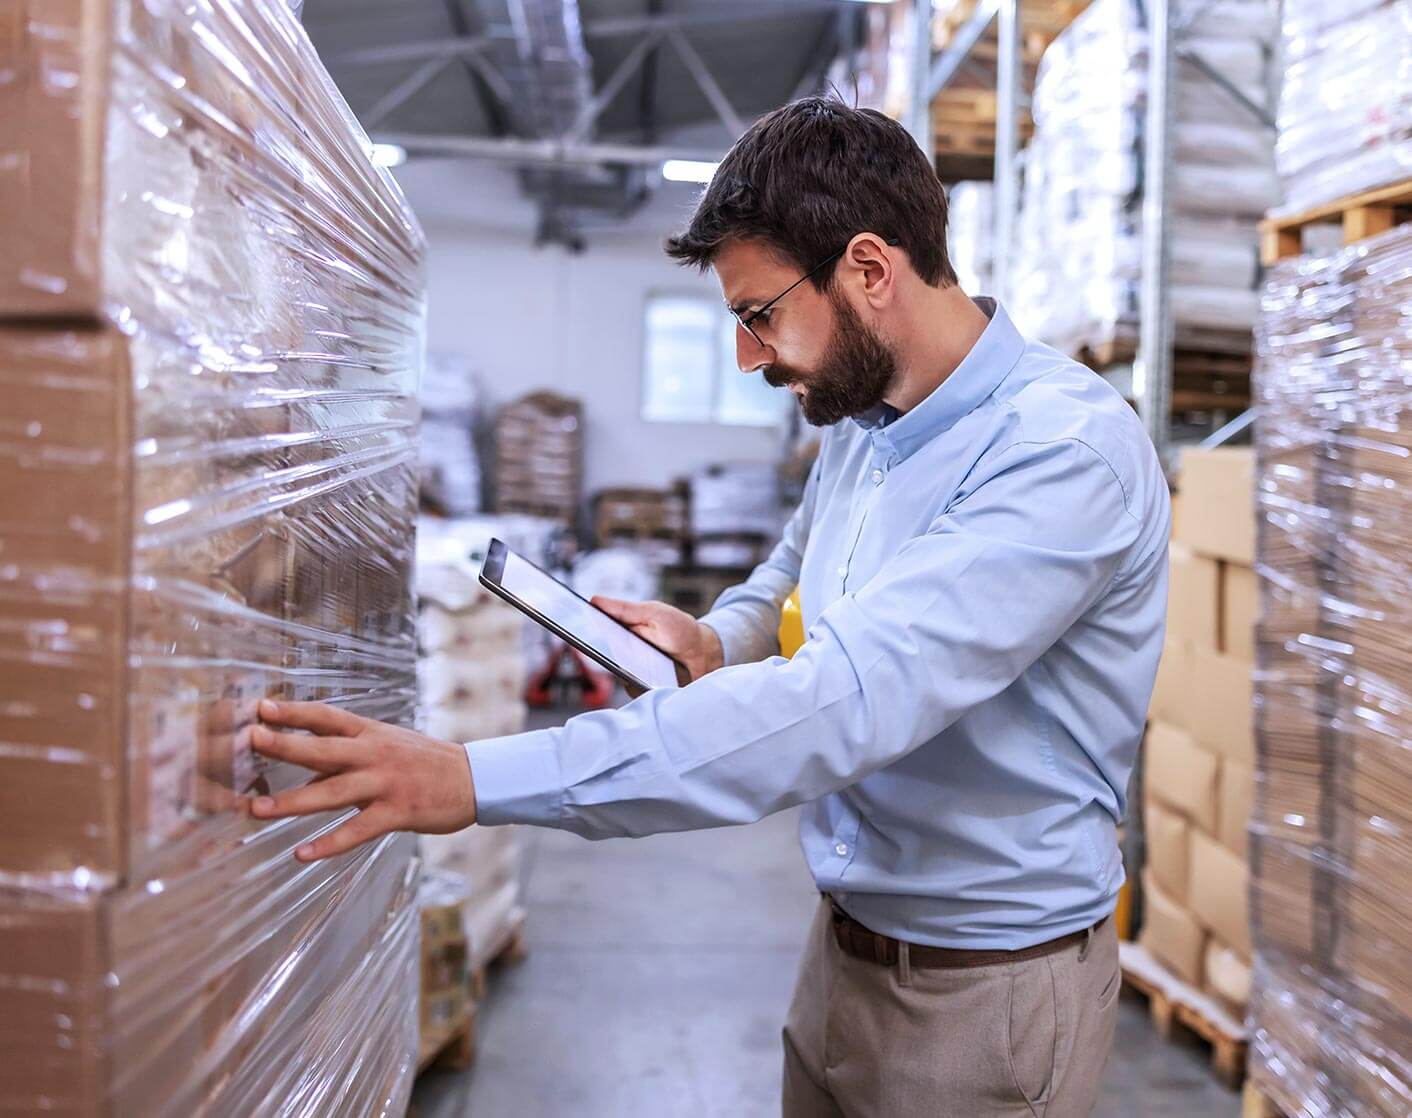 white man with beard in blue dress shirt checking pallet in warehouse using a tablet